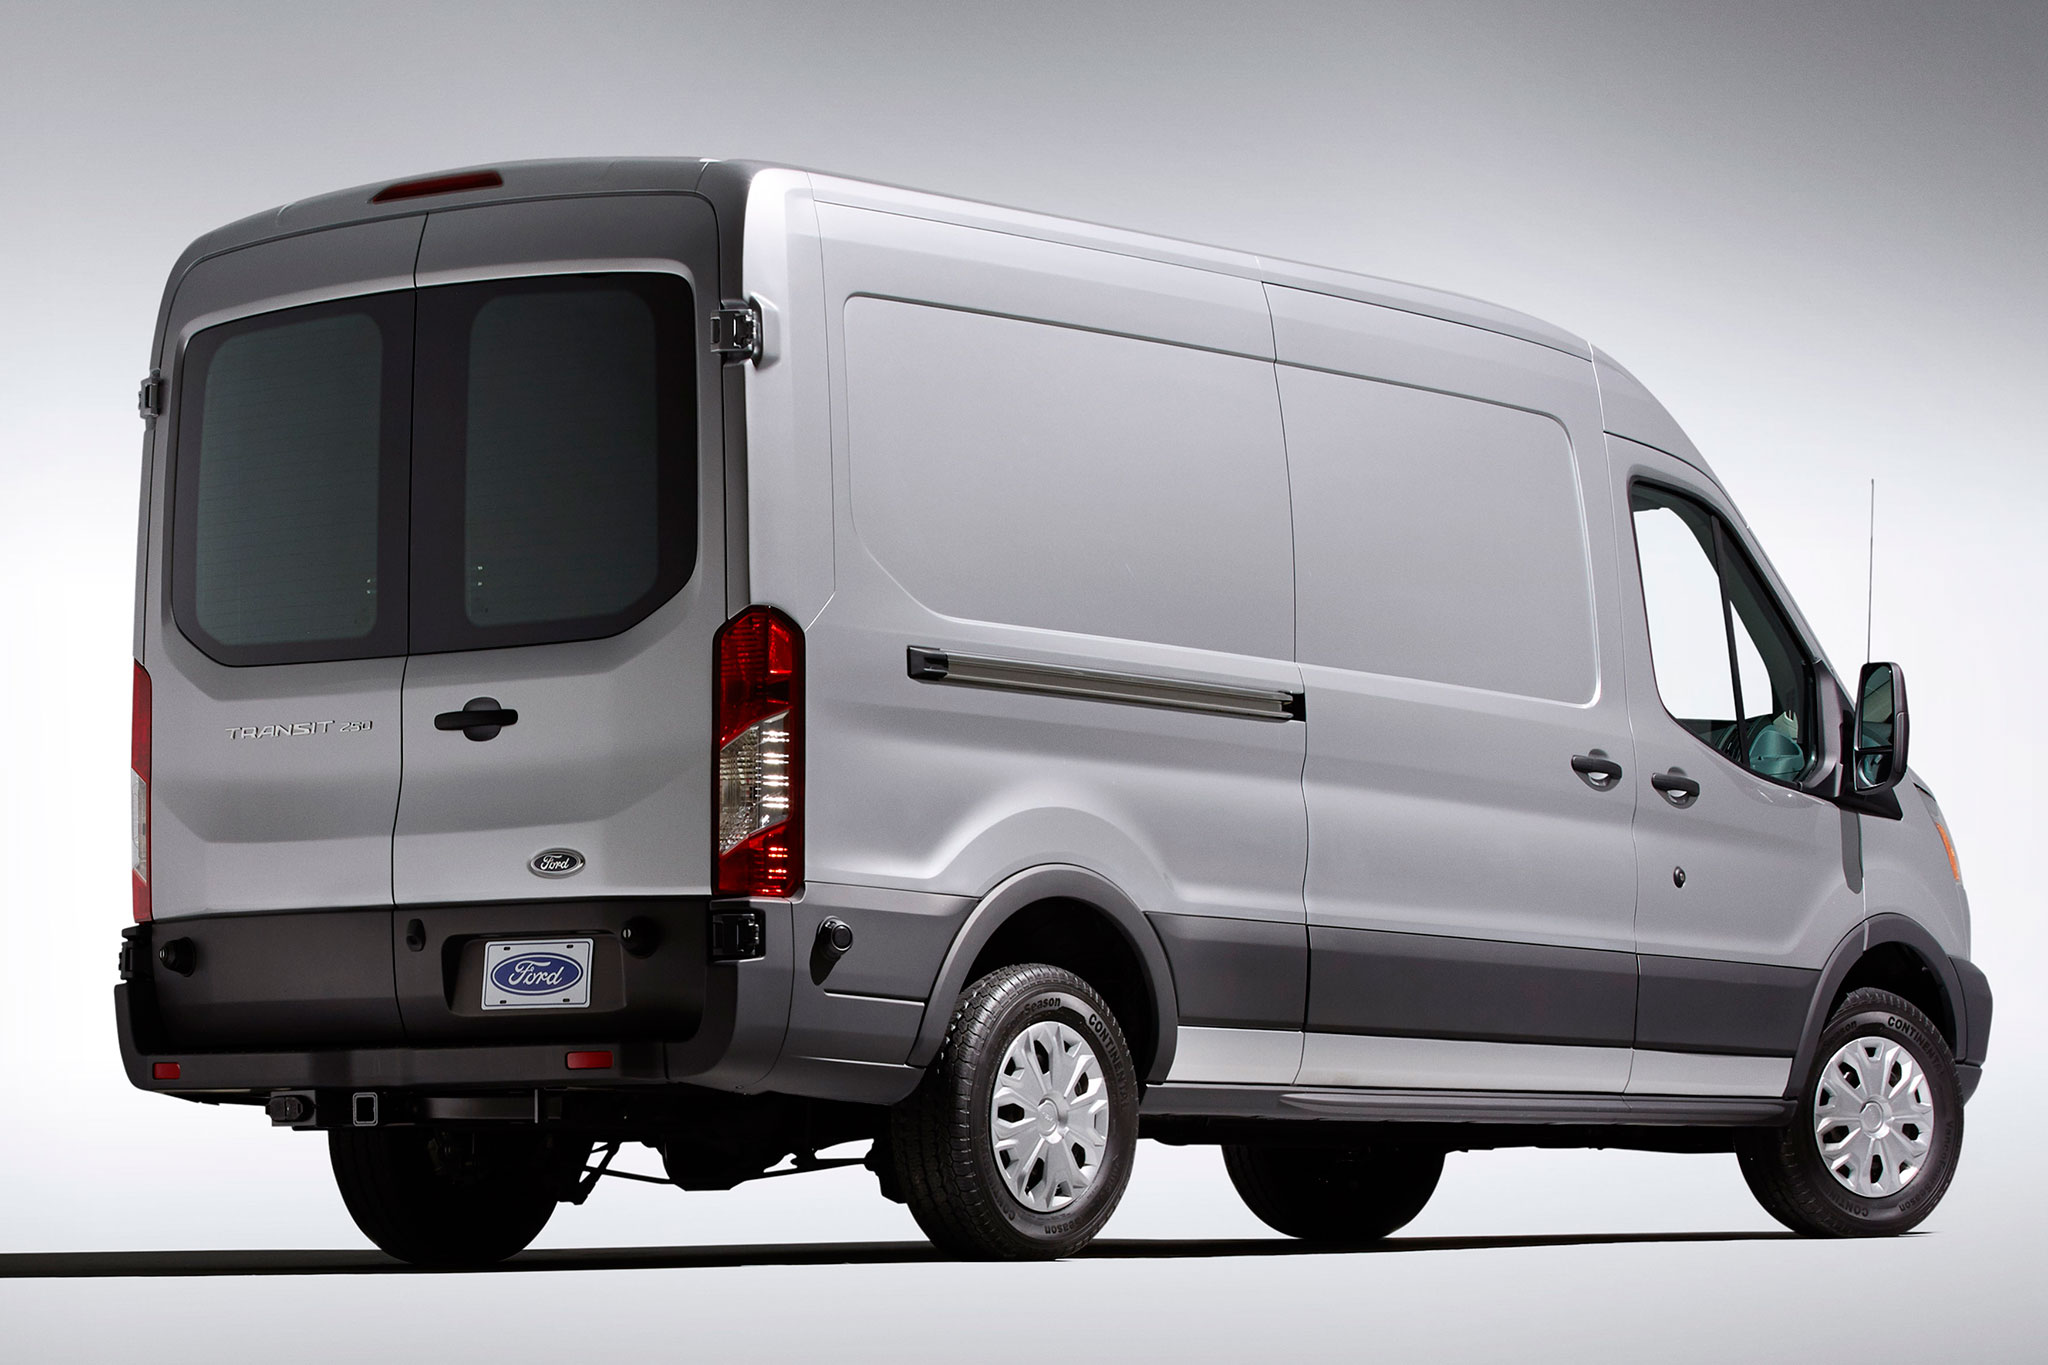 2015 ford transit mpg output cargo capacity detailed. Black Bedroom Furniture Sets. Home Design Ideas